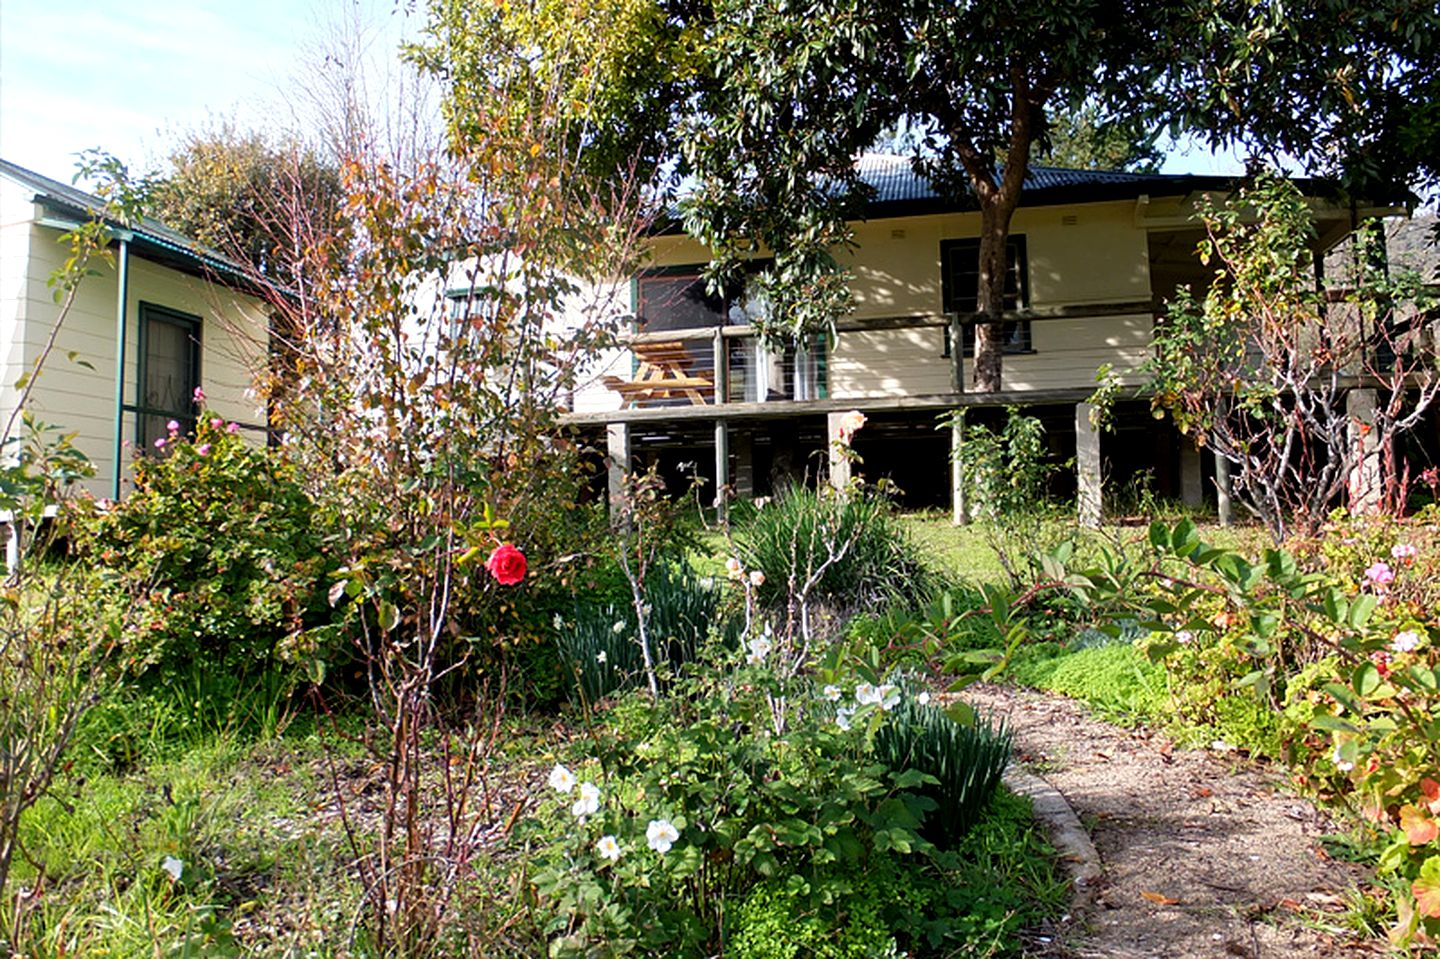 Cottages (Tumut, New South Wales, Australia)